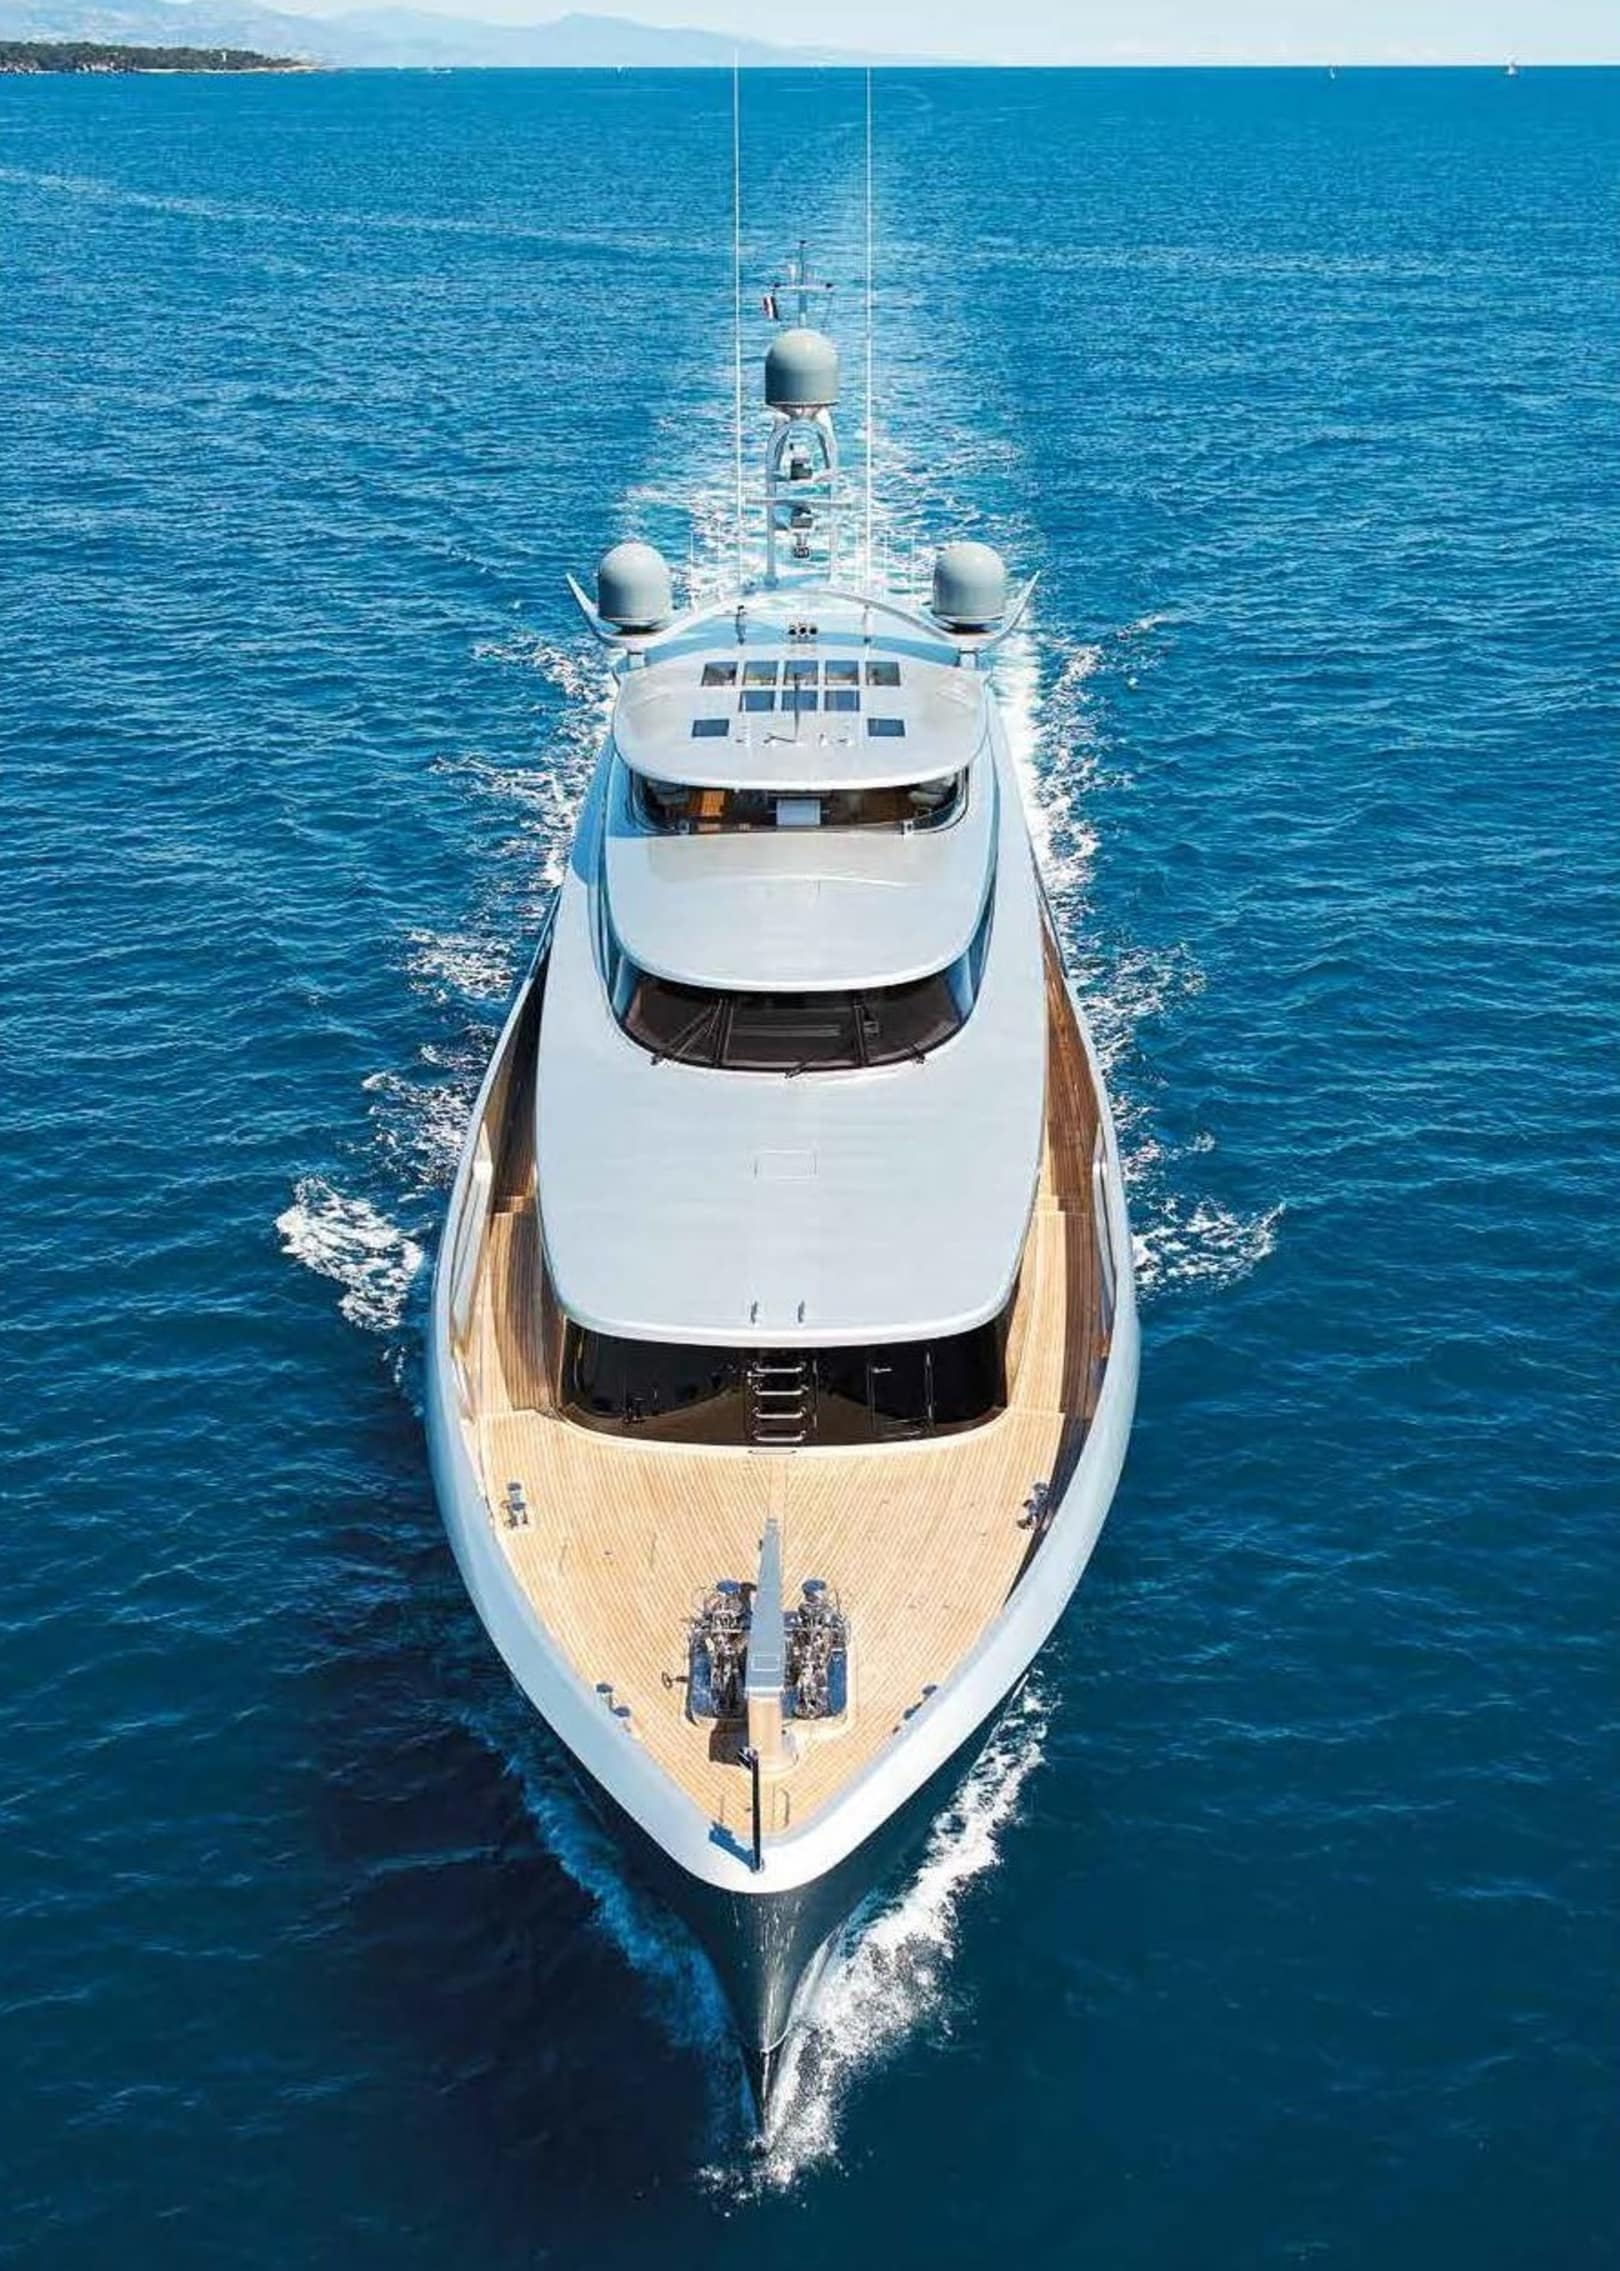 Luxury Yacht Engine Room: Lady May Yacht For Sale